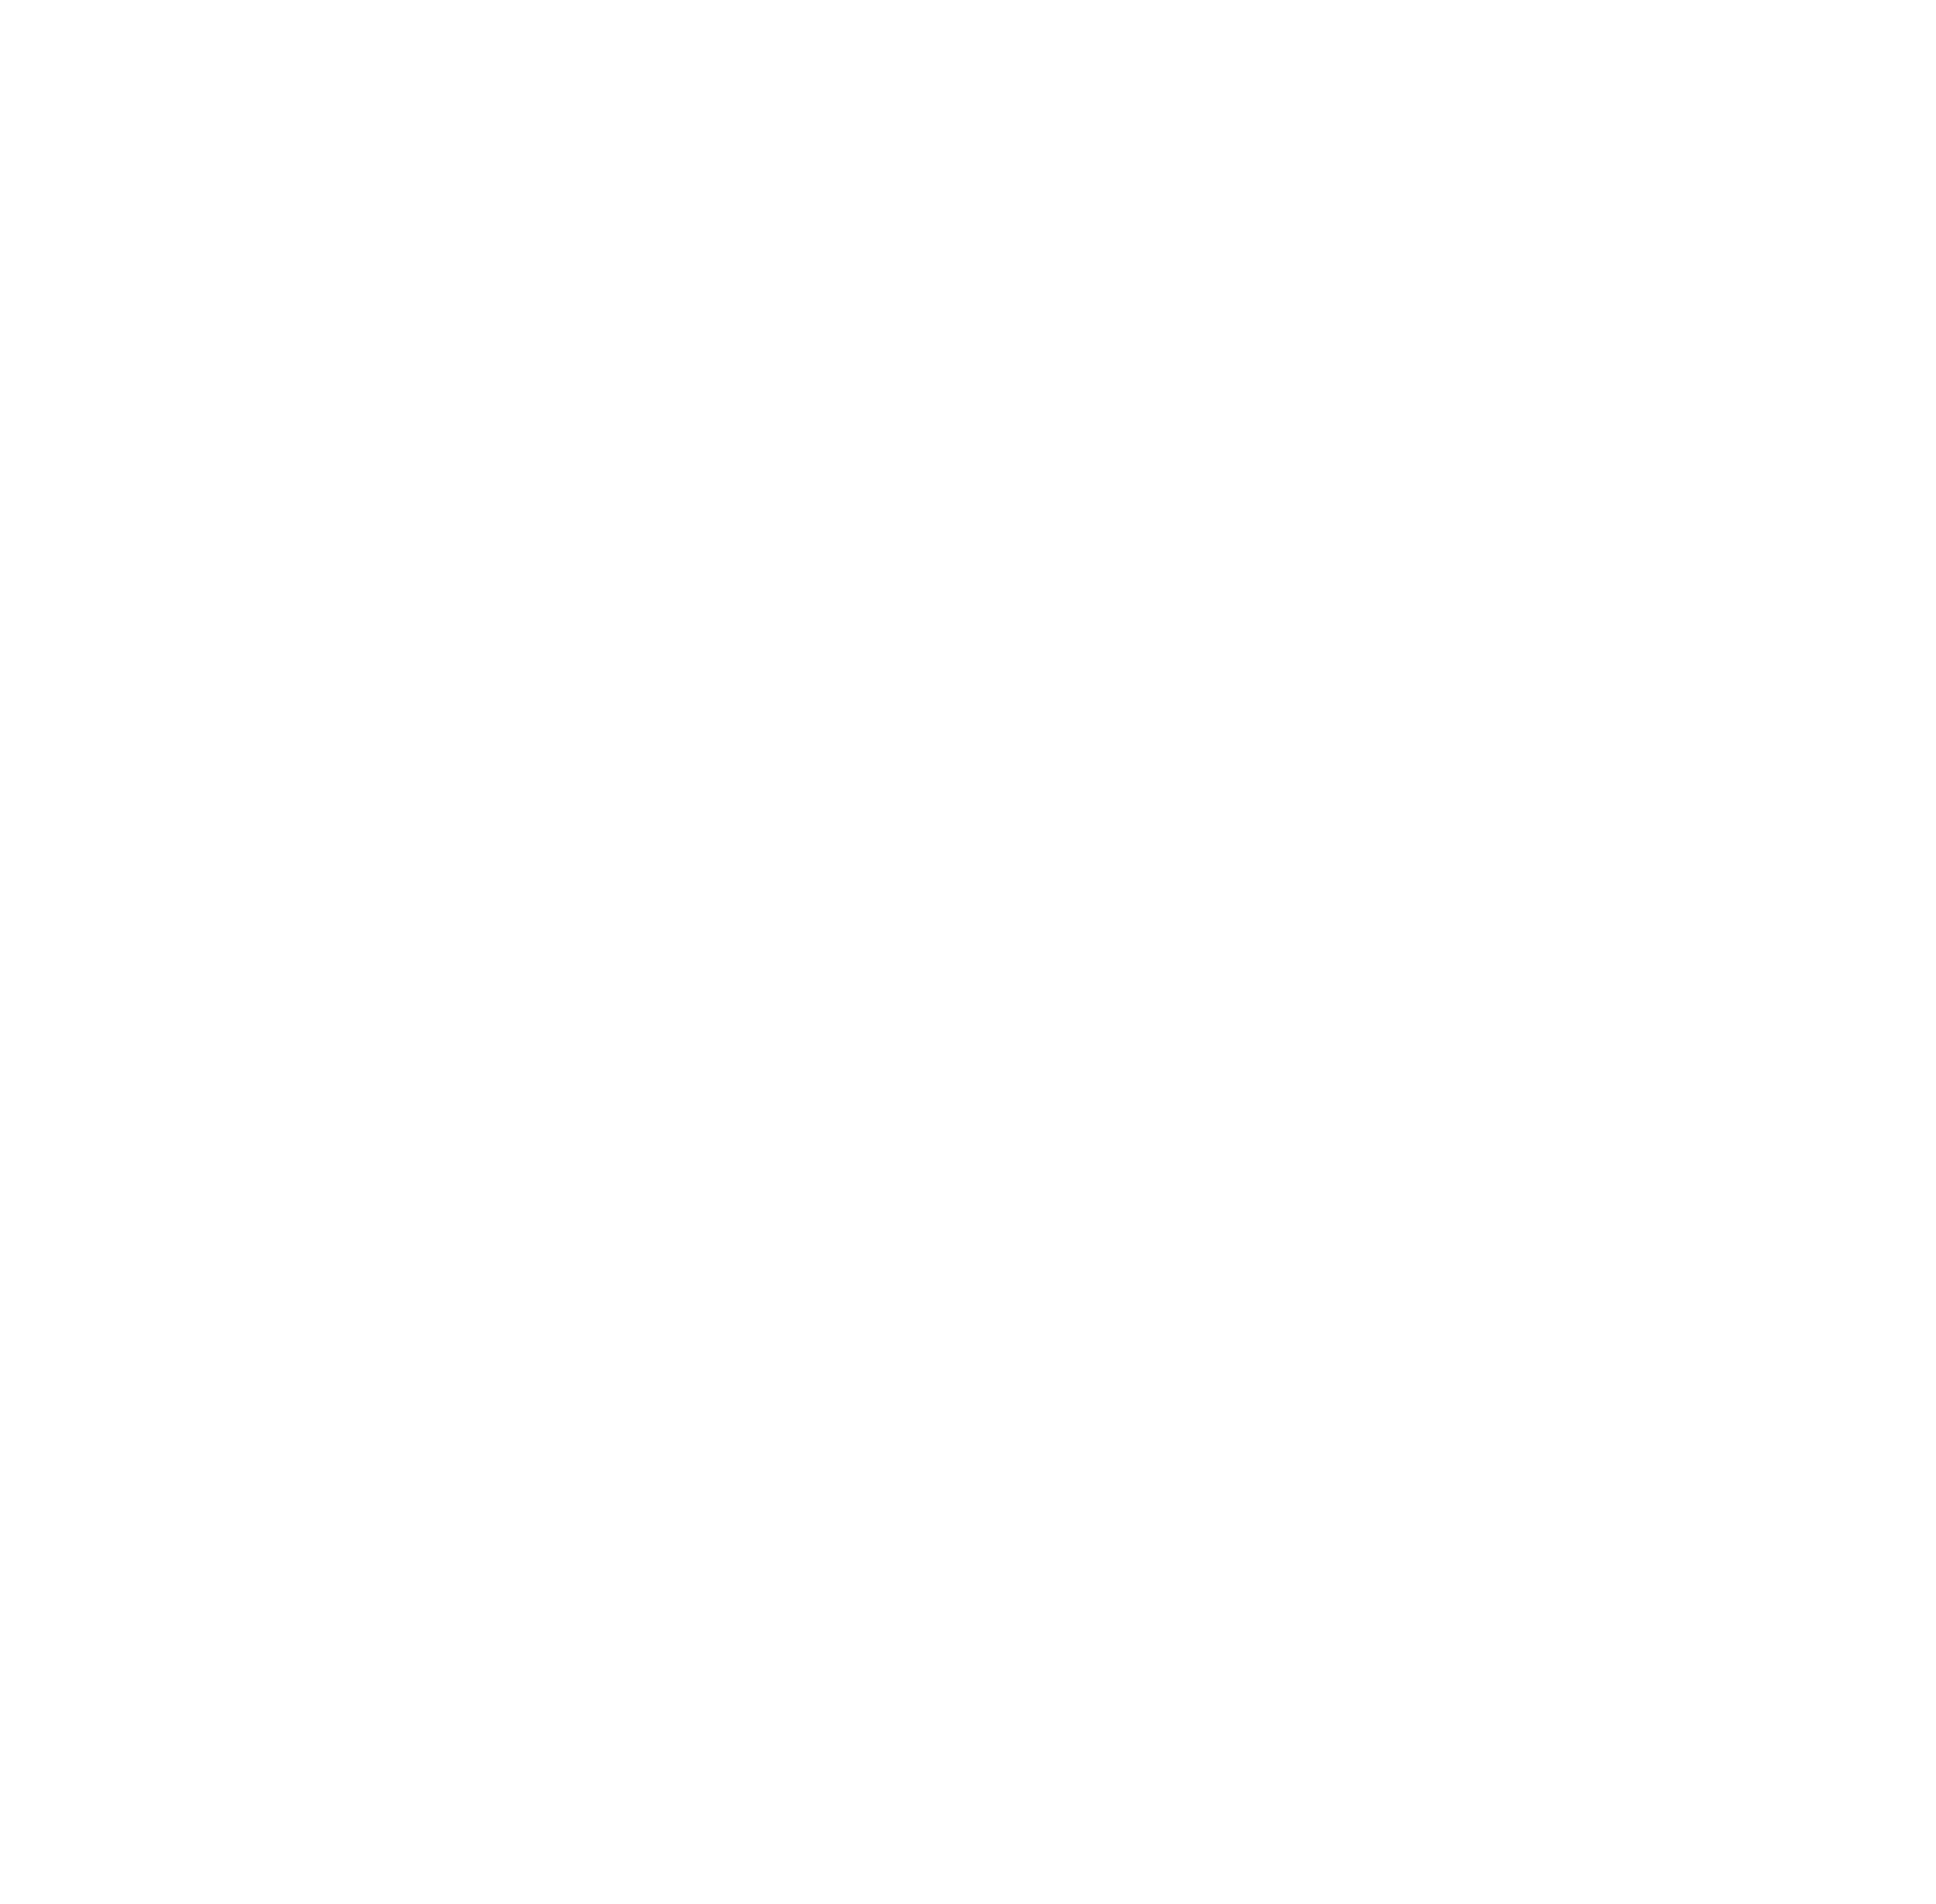 Round border frame png. Circle clipart lace